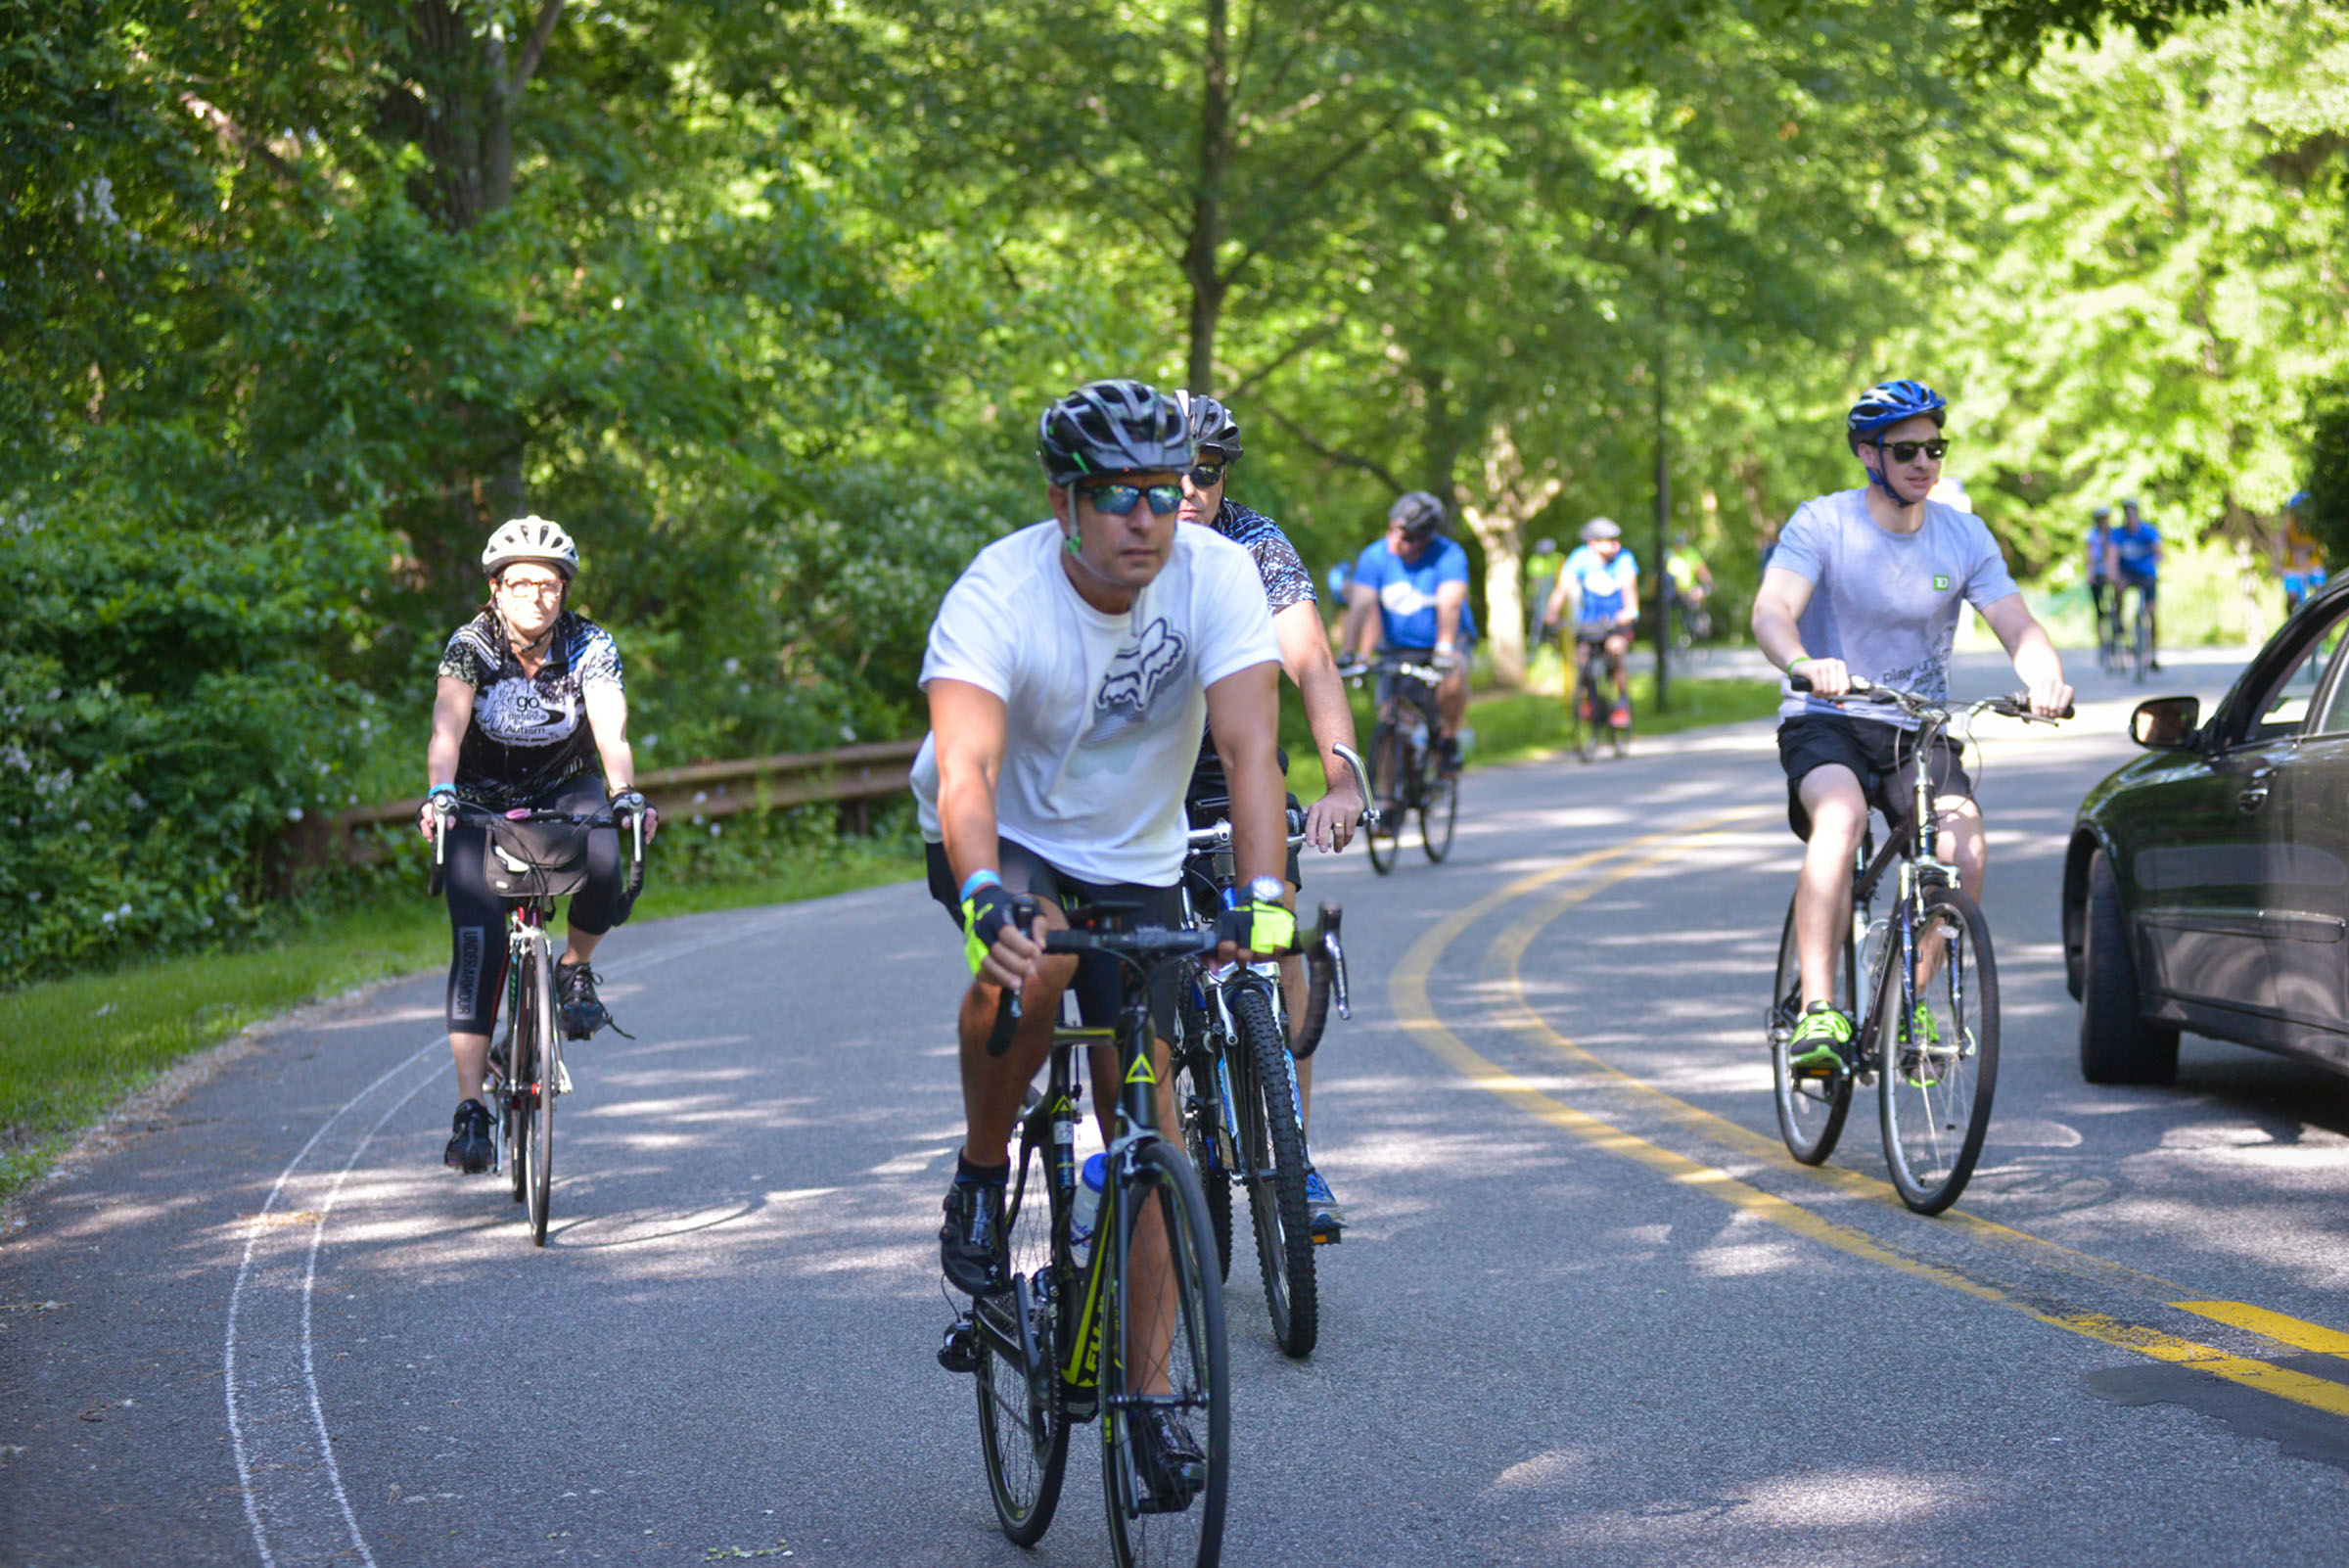 2017-06-04 GTD4A Charity Bike Ride - BCC - Paramus NJ-1898.jpg